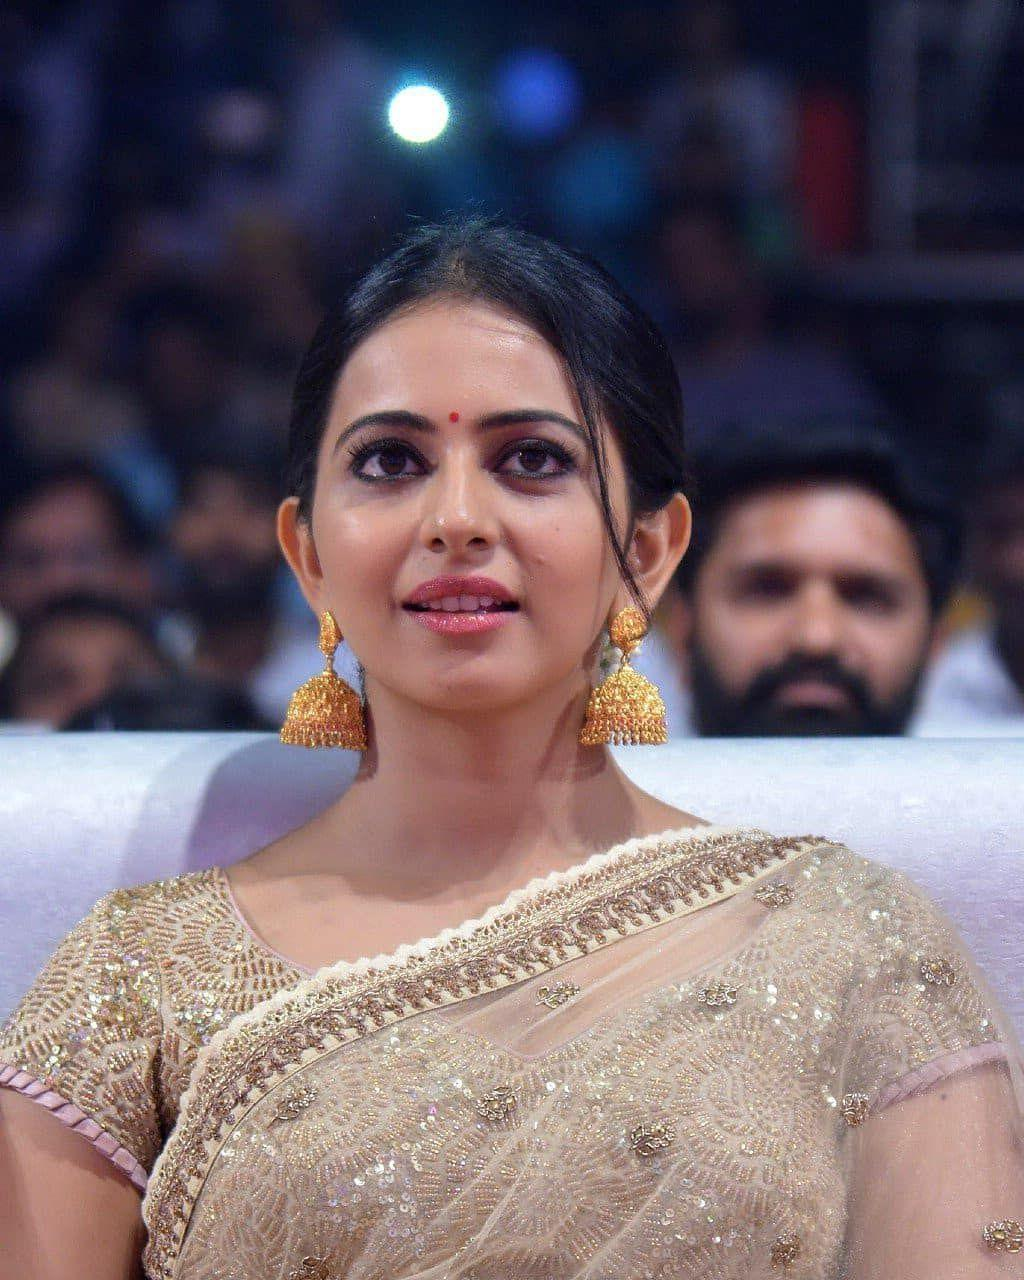 Rakul Preet spotted in Traditional attire at an event in Chennai